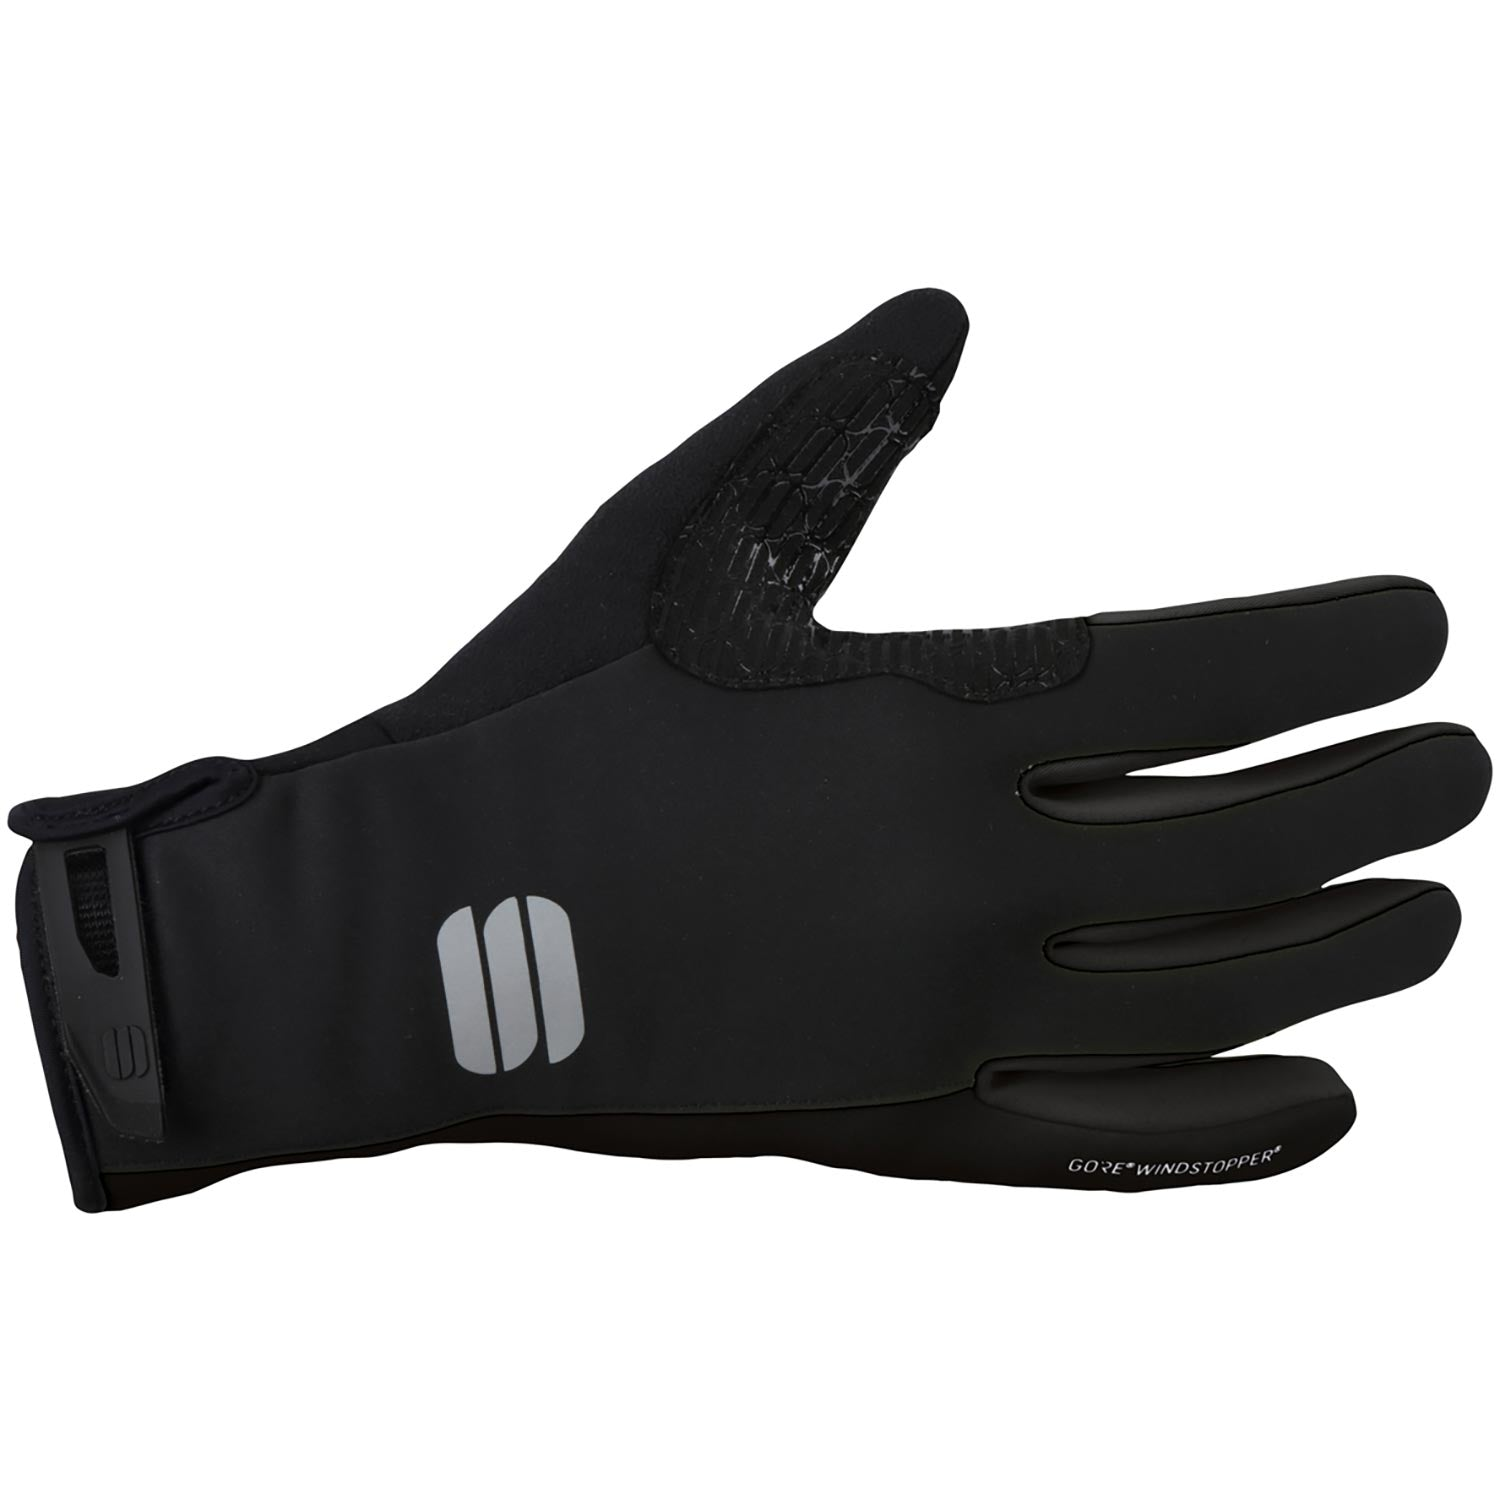 Sportful-Sportful WS Essential 2 Gloves-Black-XS-SF019680021-saddleback-elite-performance-cycling